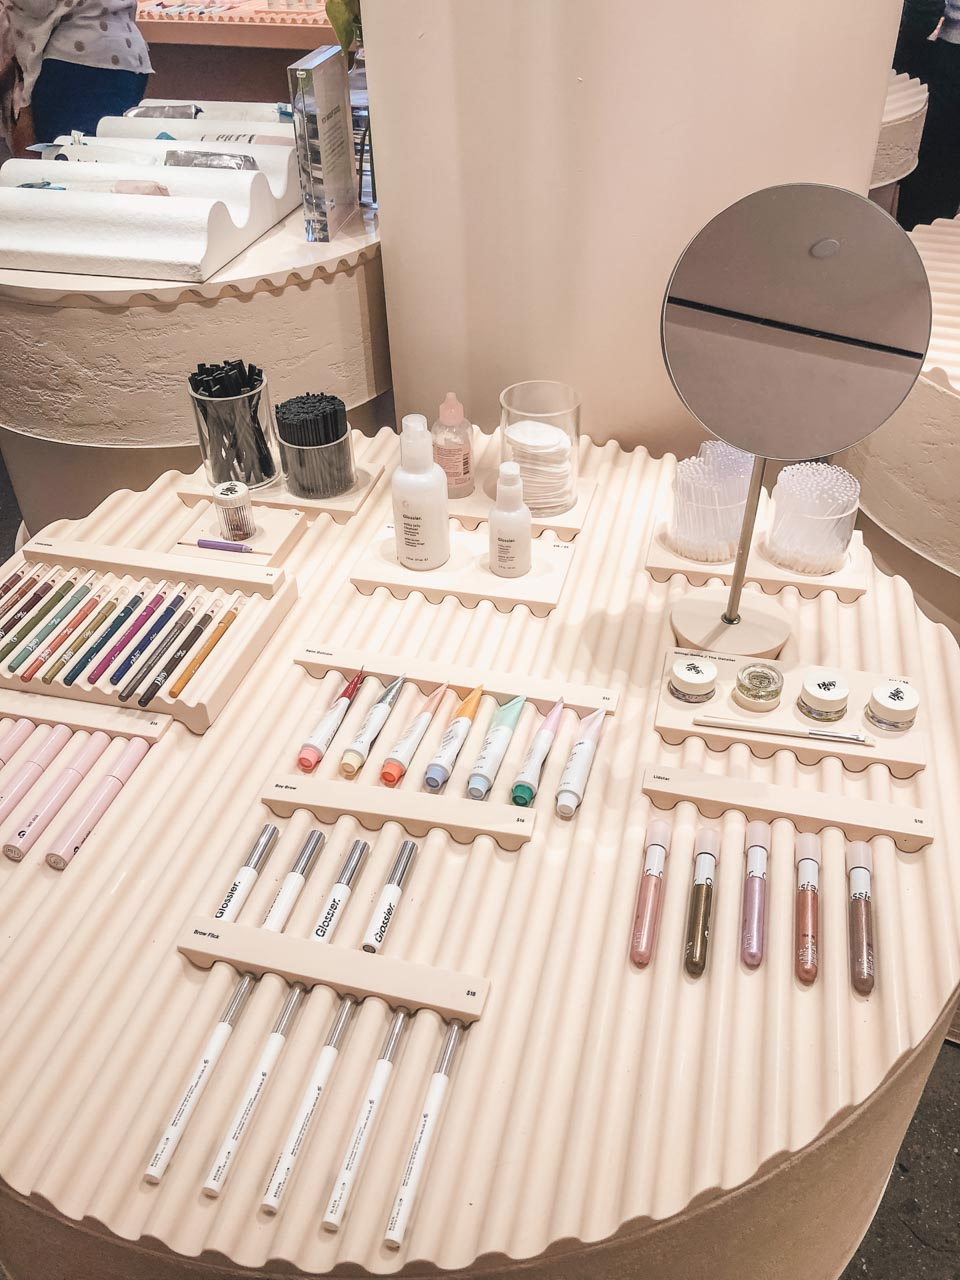 Cosmetics placed on a ribbed podium inside the Glossier flagship store in New York City